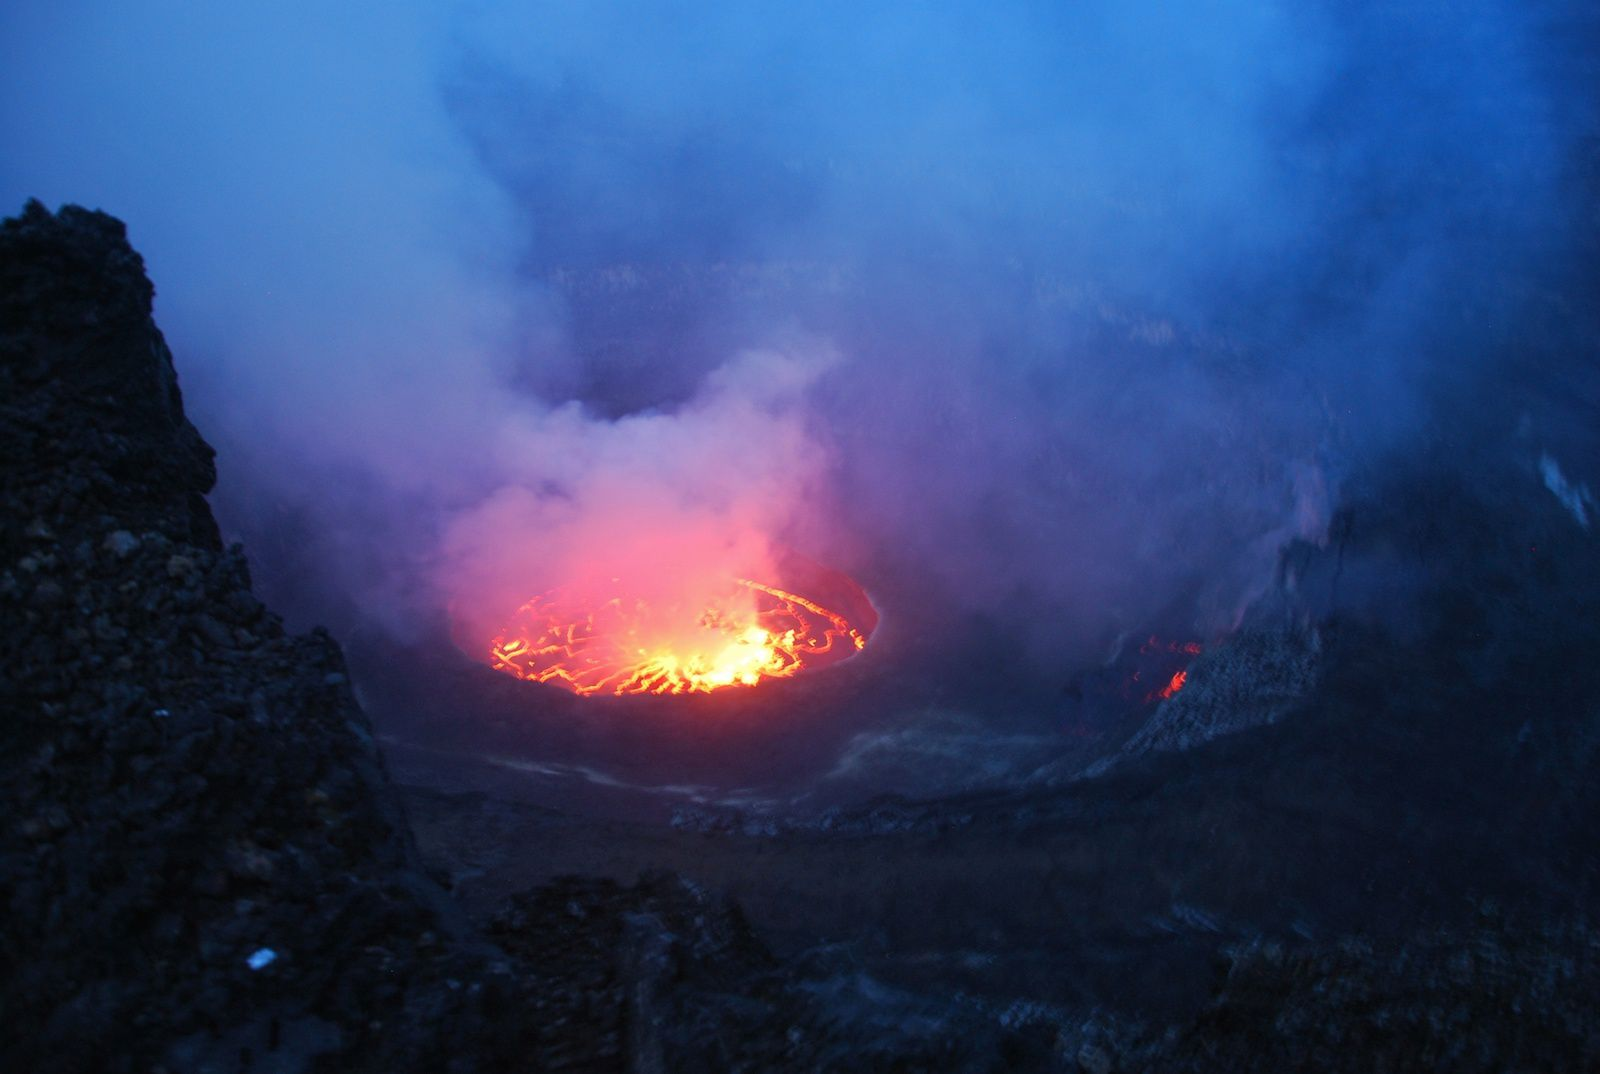 Nyiragongo - 01/03/2016 - Opening of a new vent on the eastern part of the terrace (to the right of the lava lake) - OVG Goma pictures - a click to enlarge.